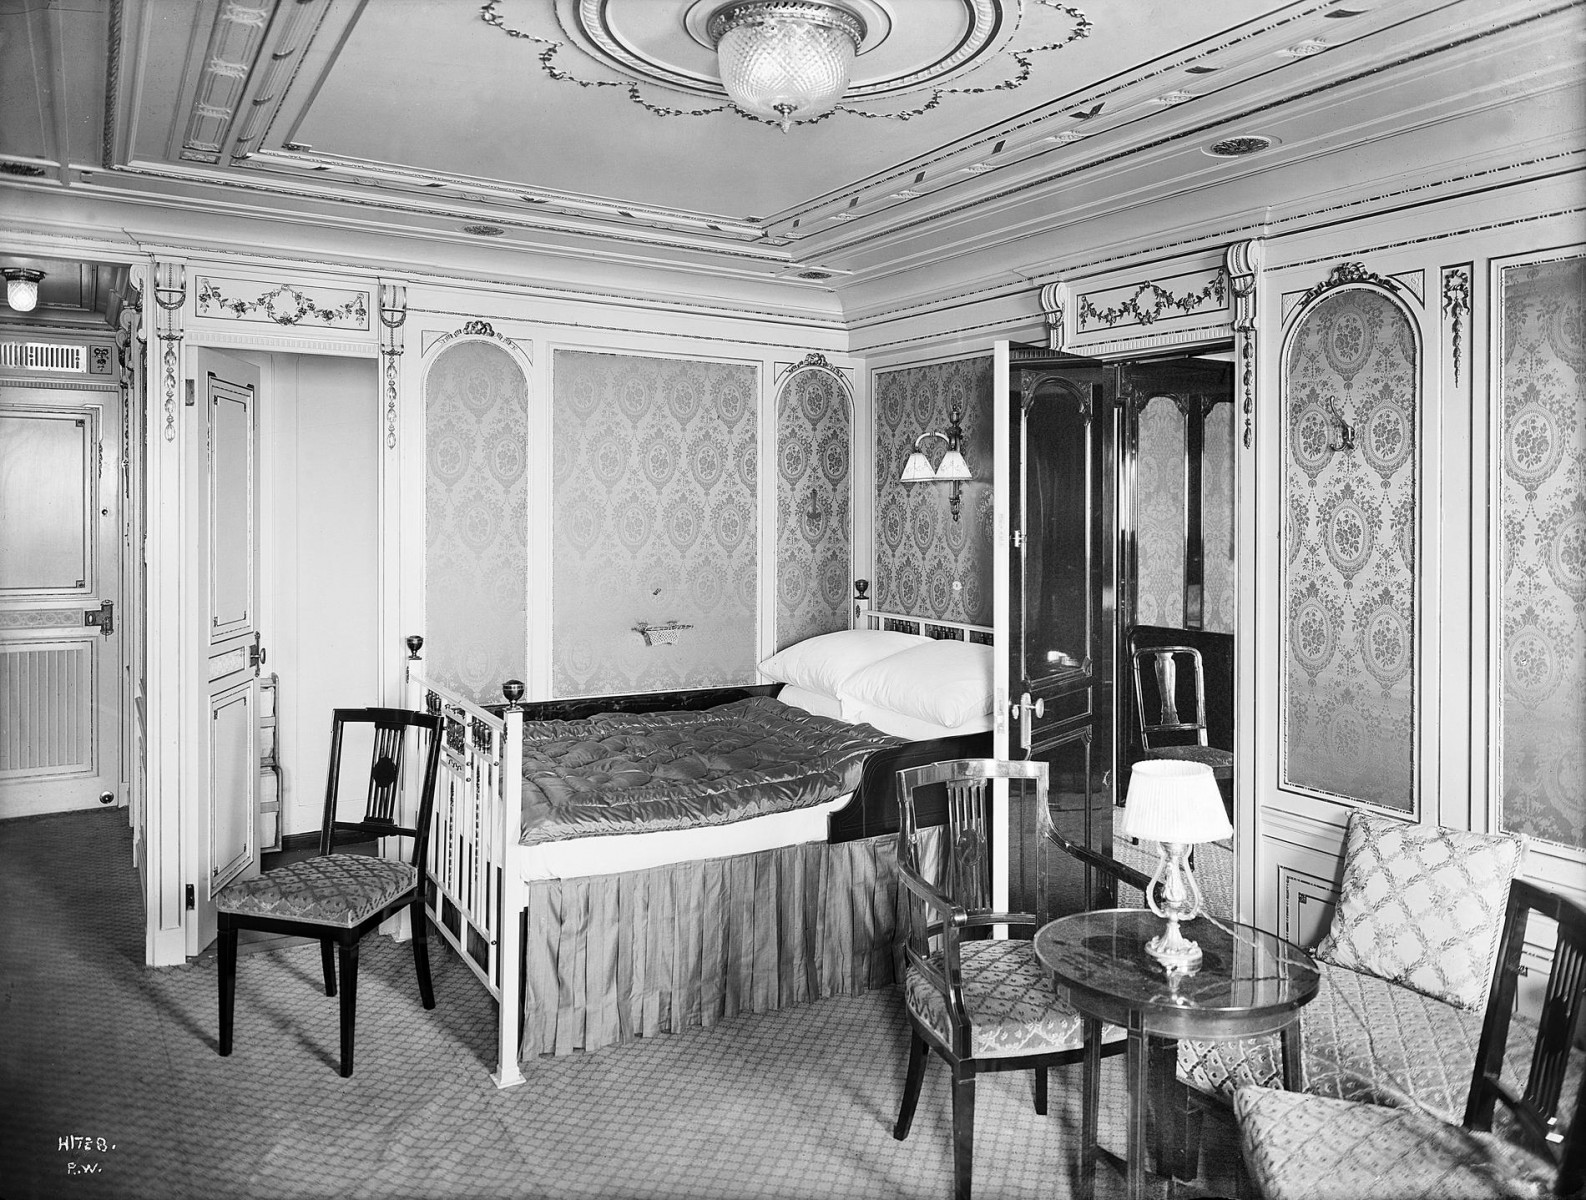 Stateroom B-58, decorated in Louis XVI style.